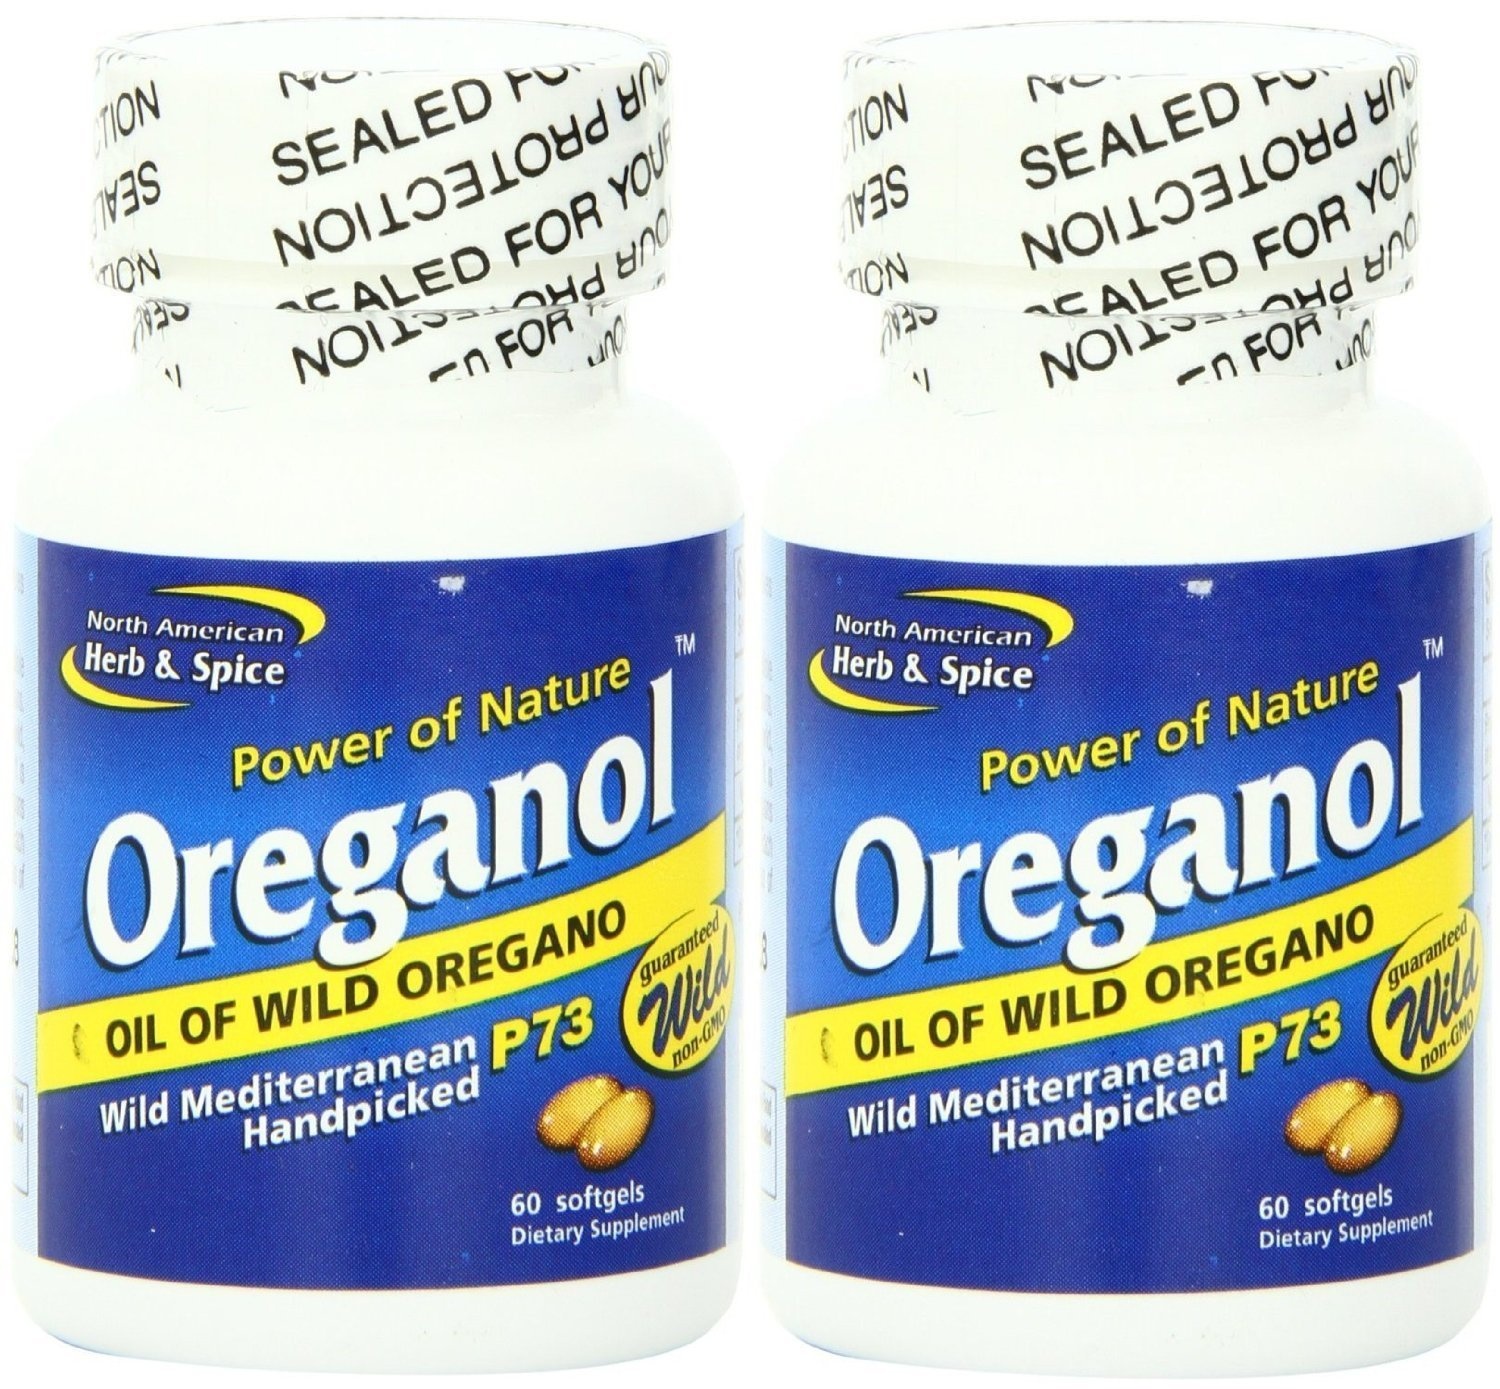 North American Herb and Spice, Oreganol P73 Gel-Capsules, 60 X 2 by North American Herb & Spice